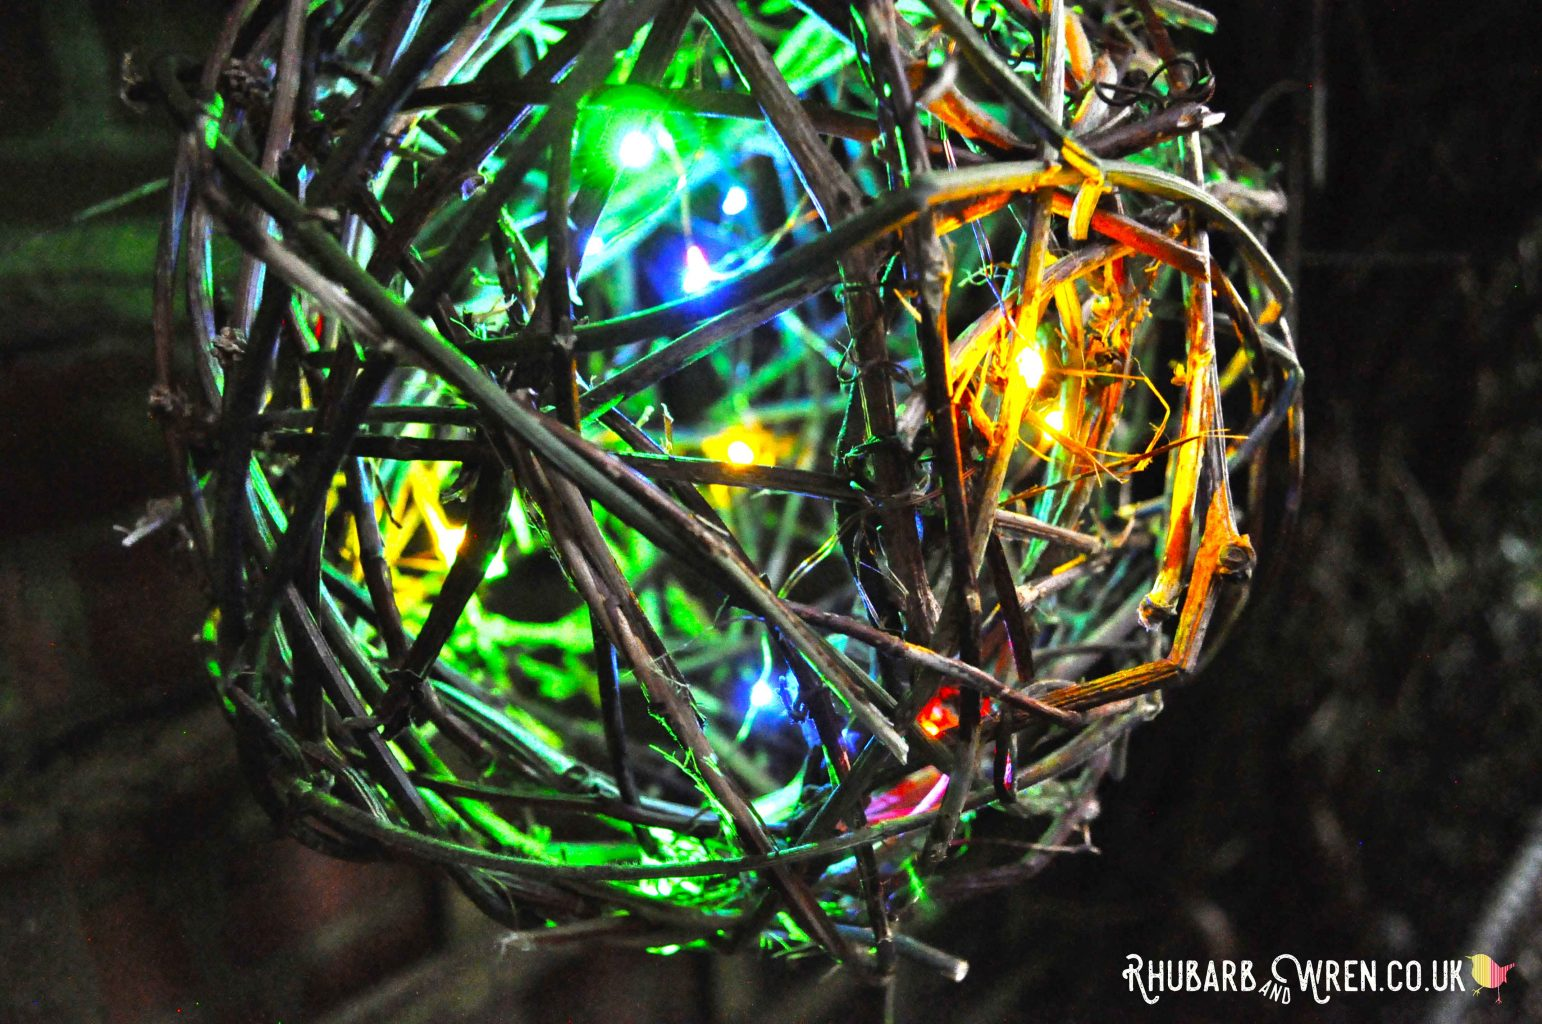 Close up of DIY twig ball lantern with multi-colour LED lights